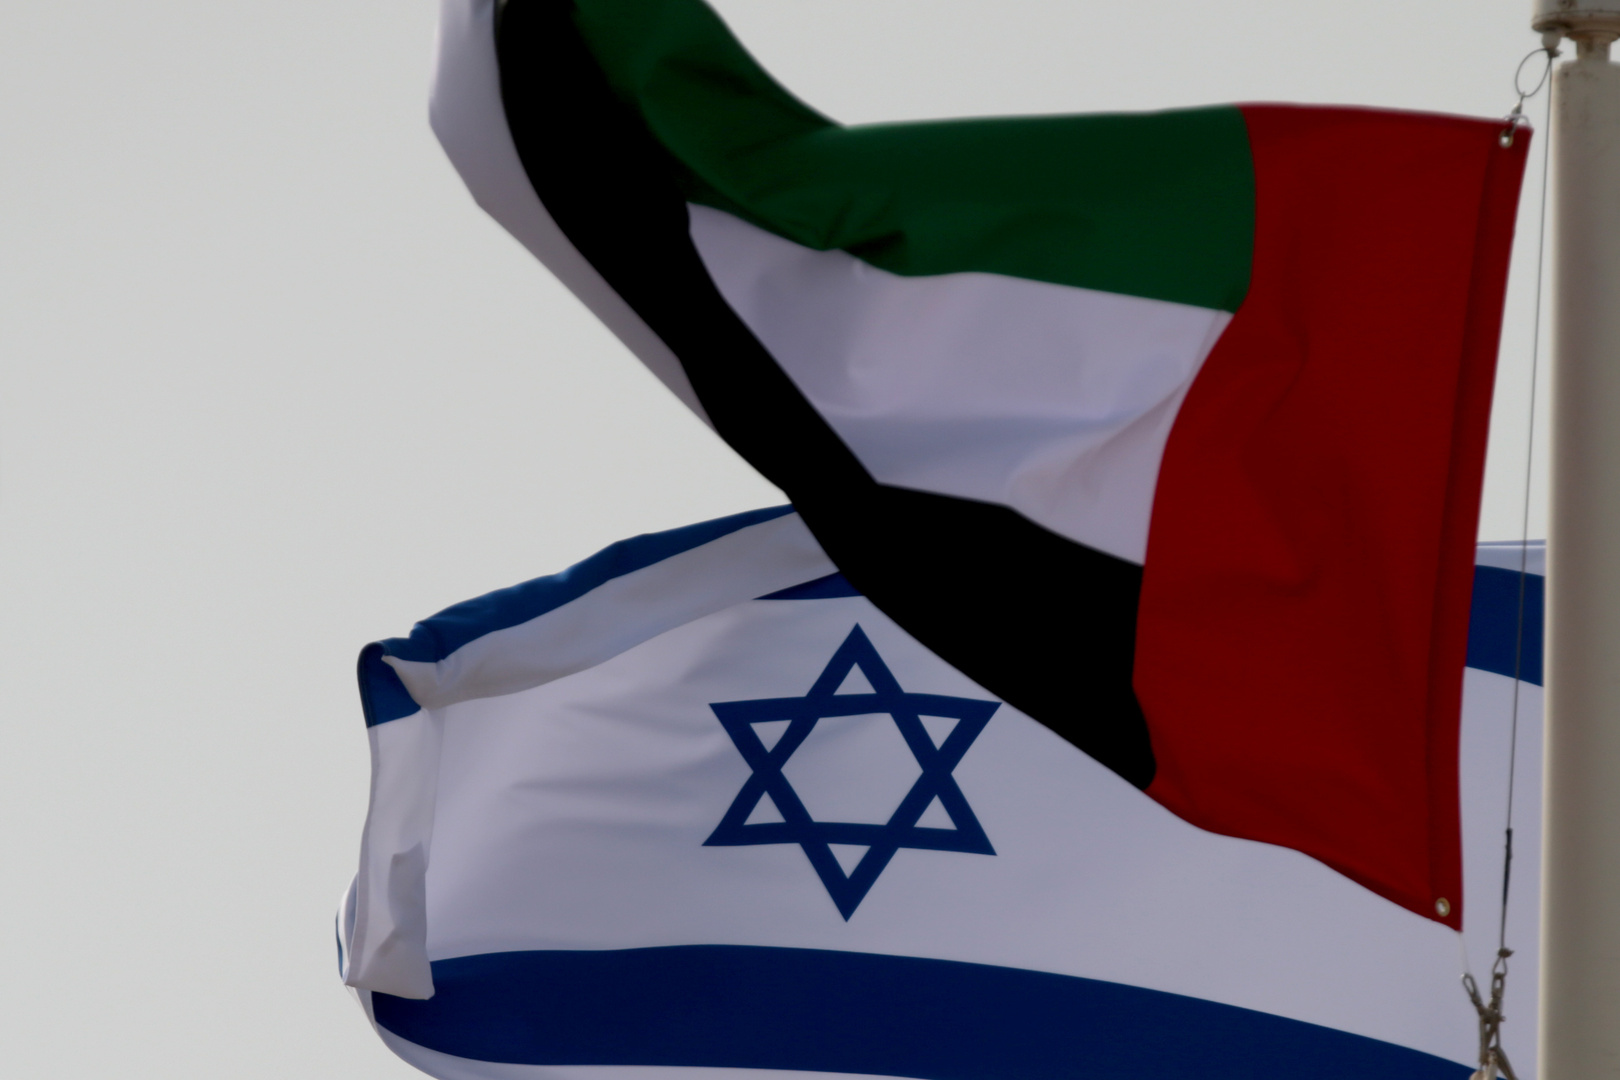 An Emirati official: The volume of trade exchange with Israel may reach 6.5 billion dollars